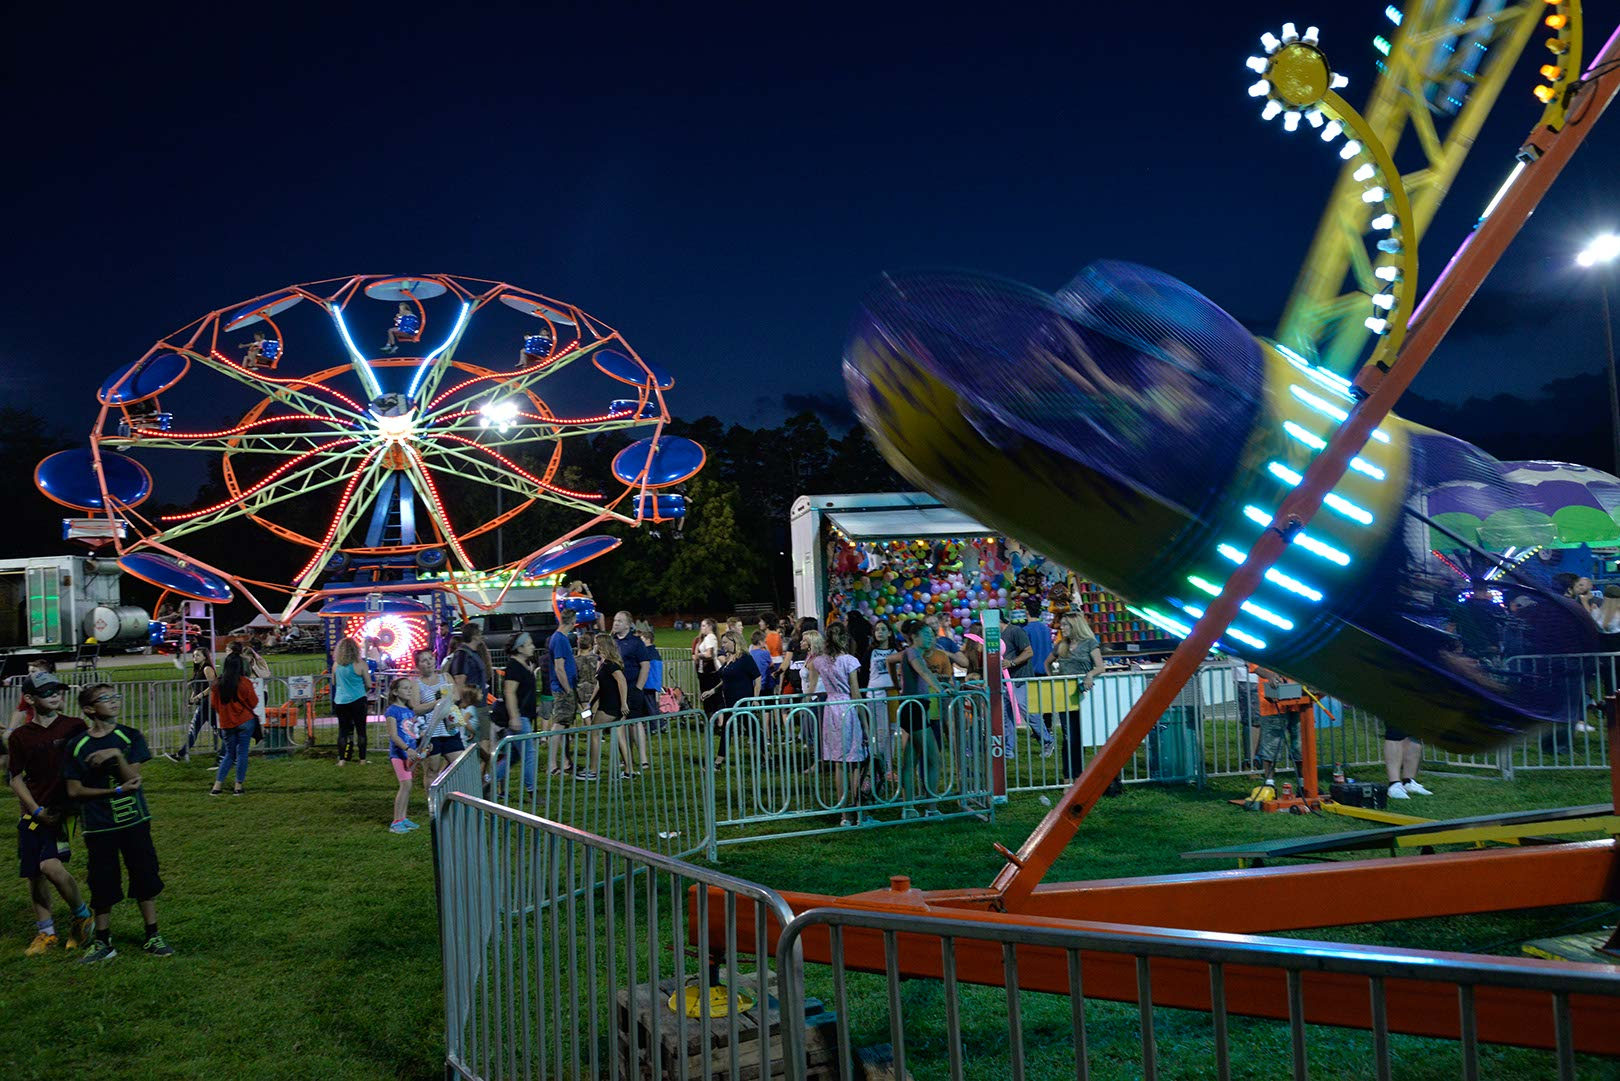 Magical Midways at Beeton Fair